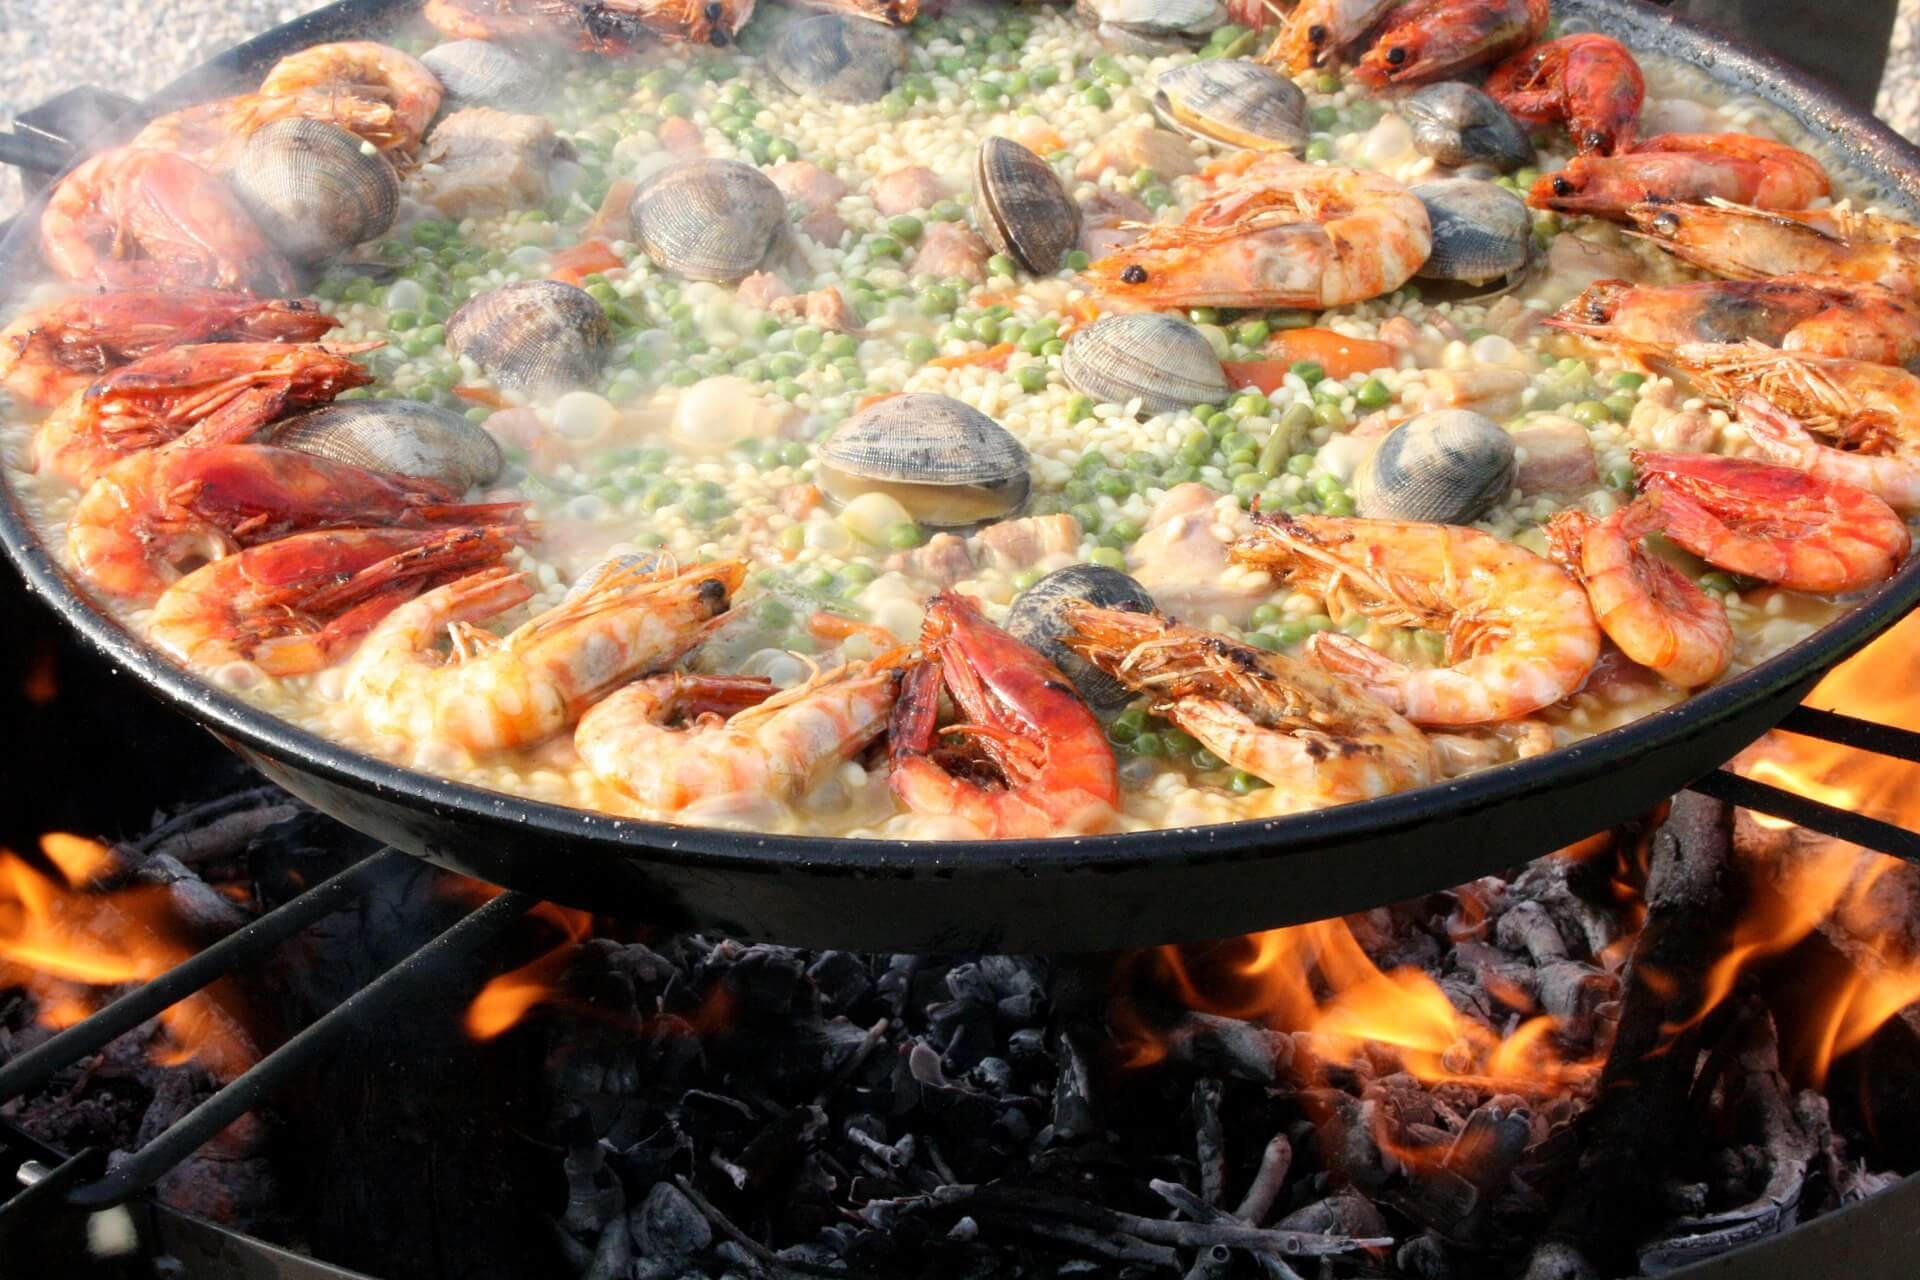 Paella - Lena - Mixed - Seafood - Shrimp - Prawn - Valencia - Spain